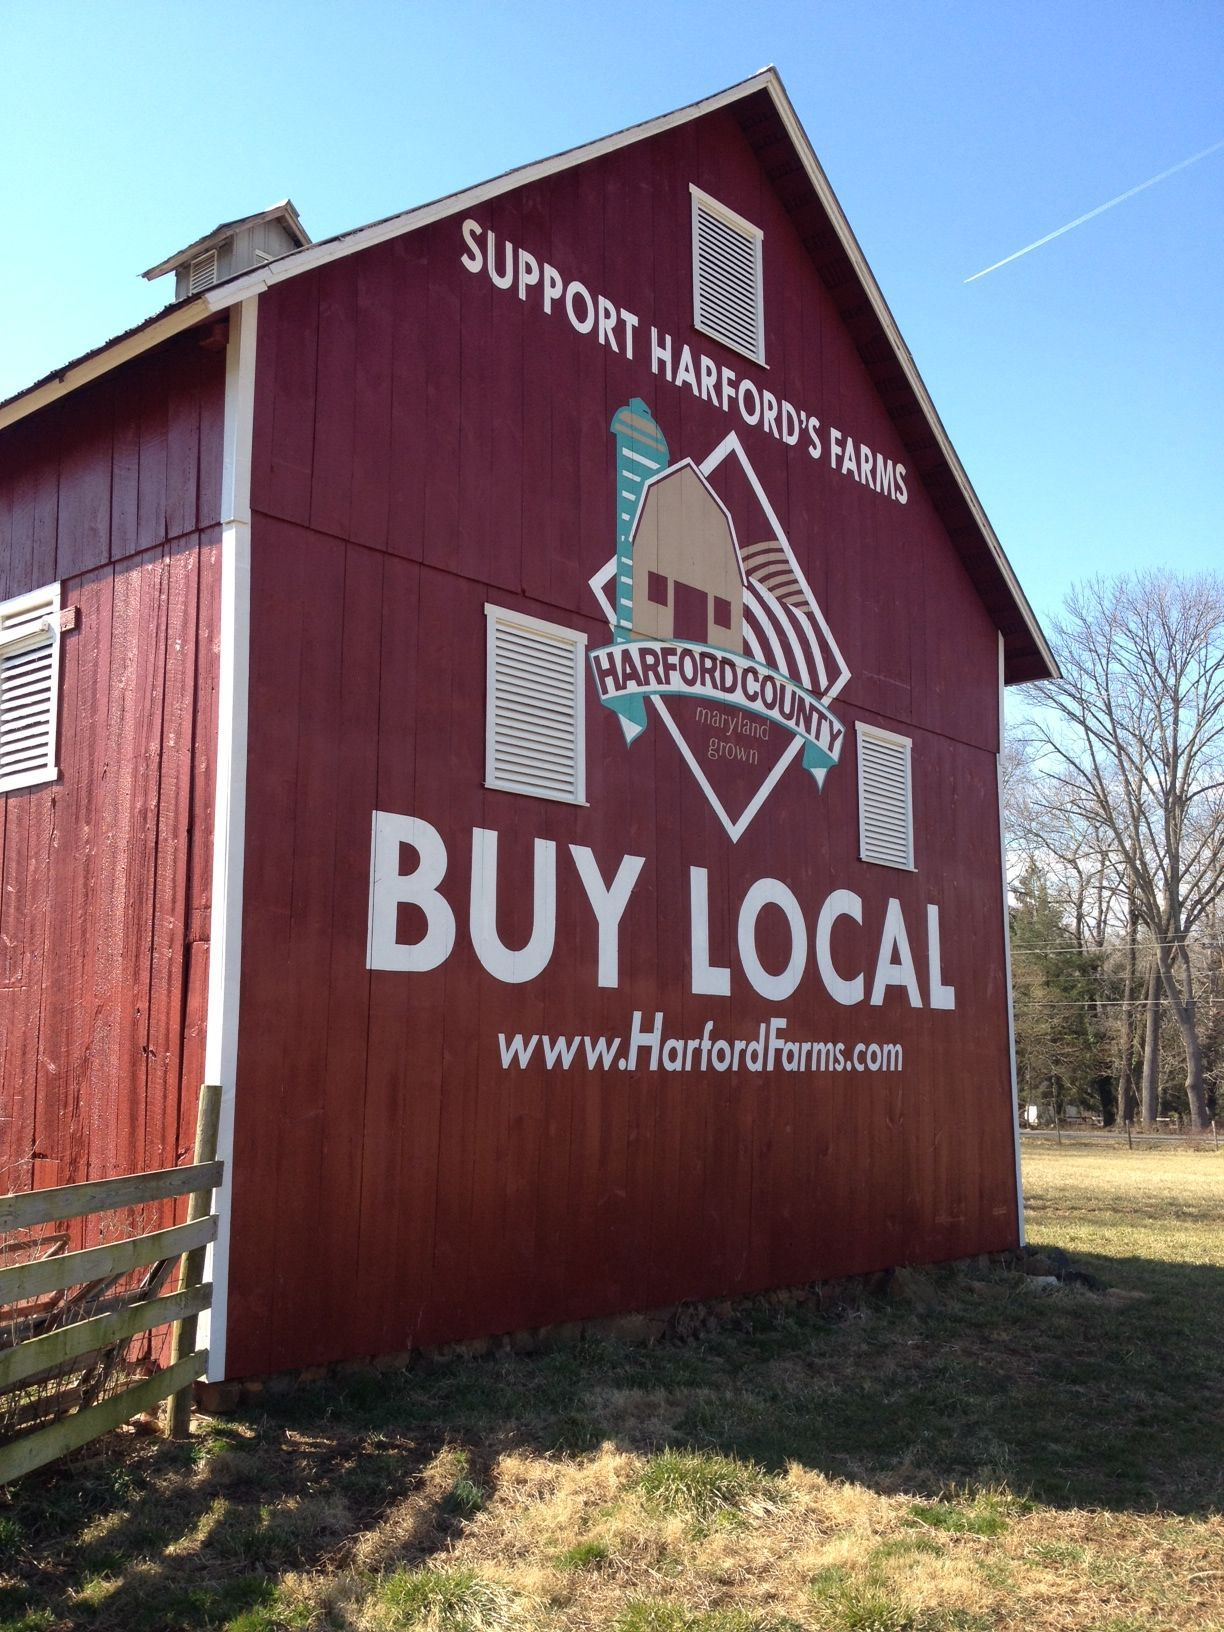 Family farms are the foundation of a sustainable economy